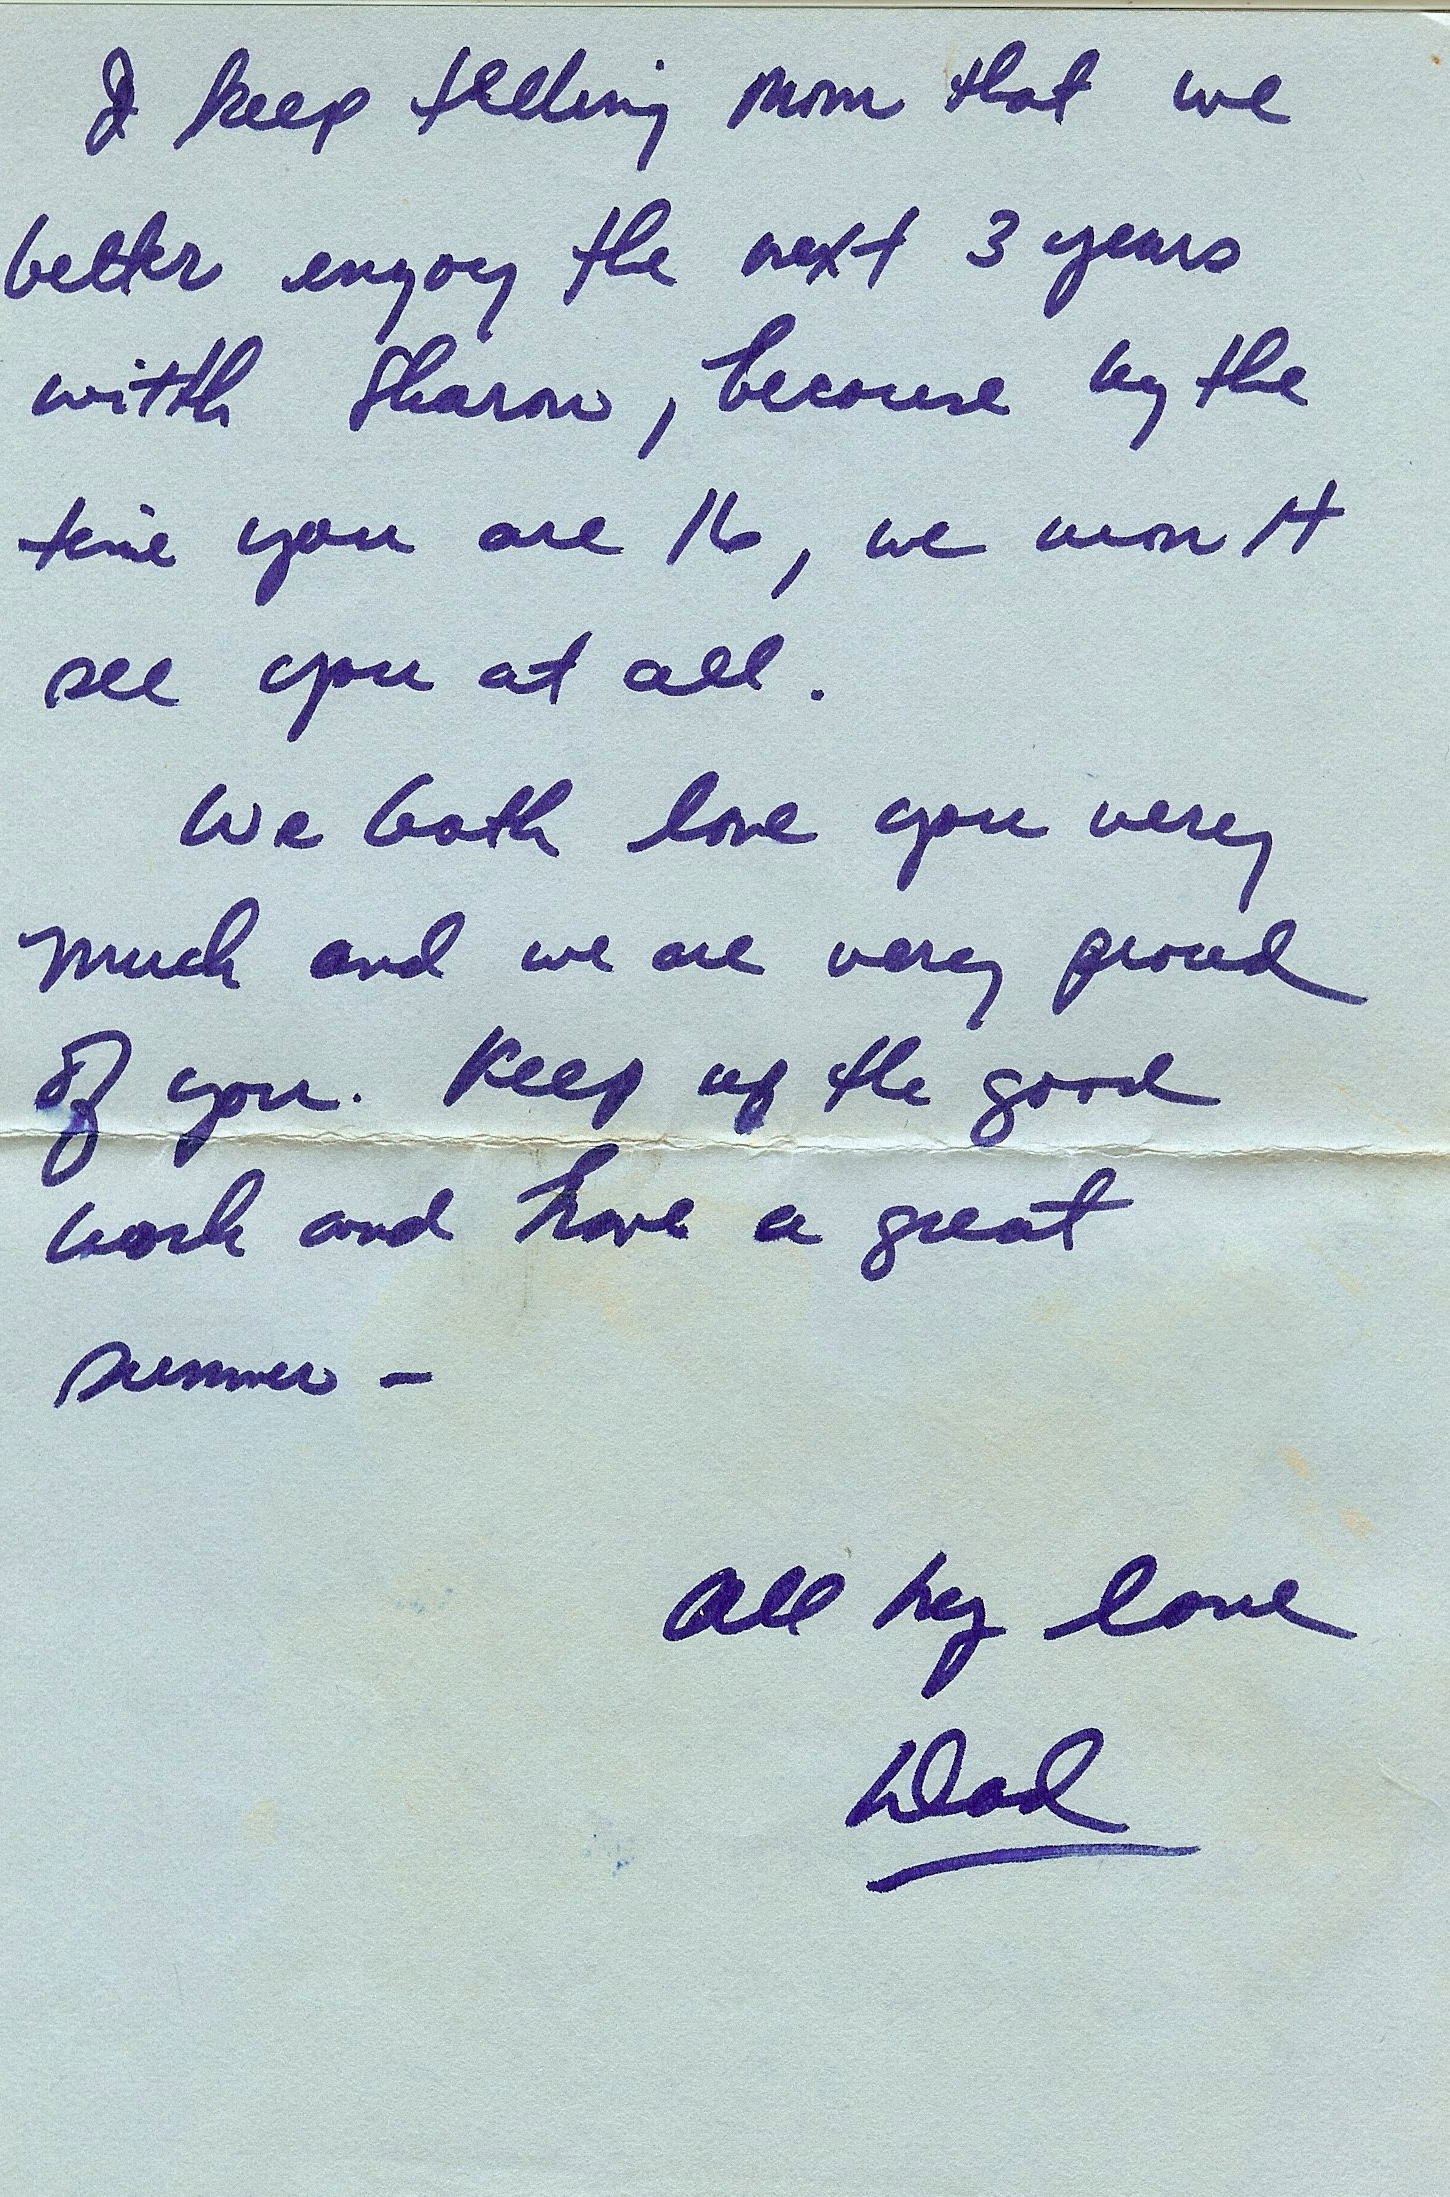 page 1 letter handwritten father correspondence memory family midlife empty nest